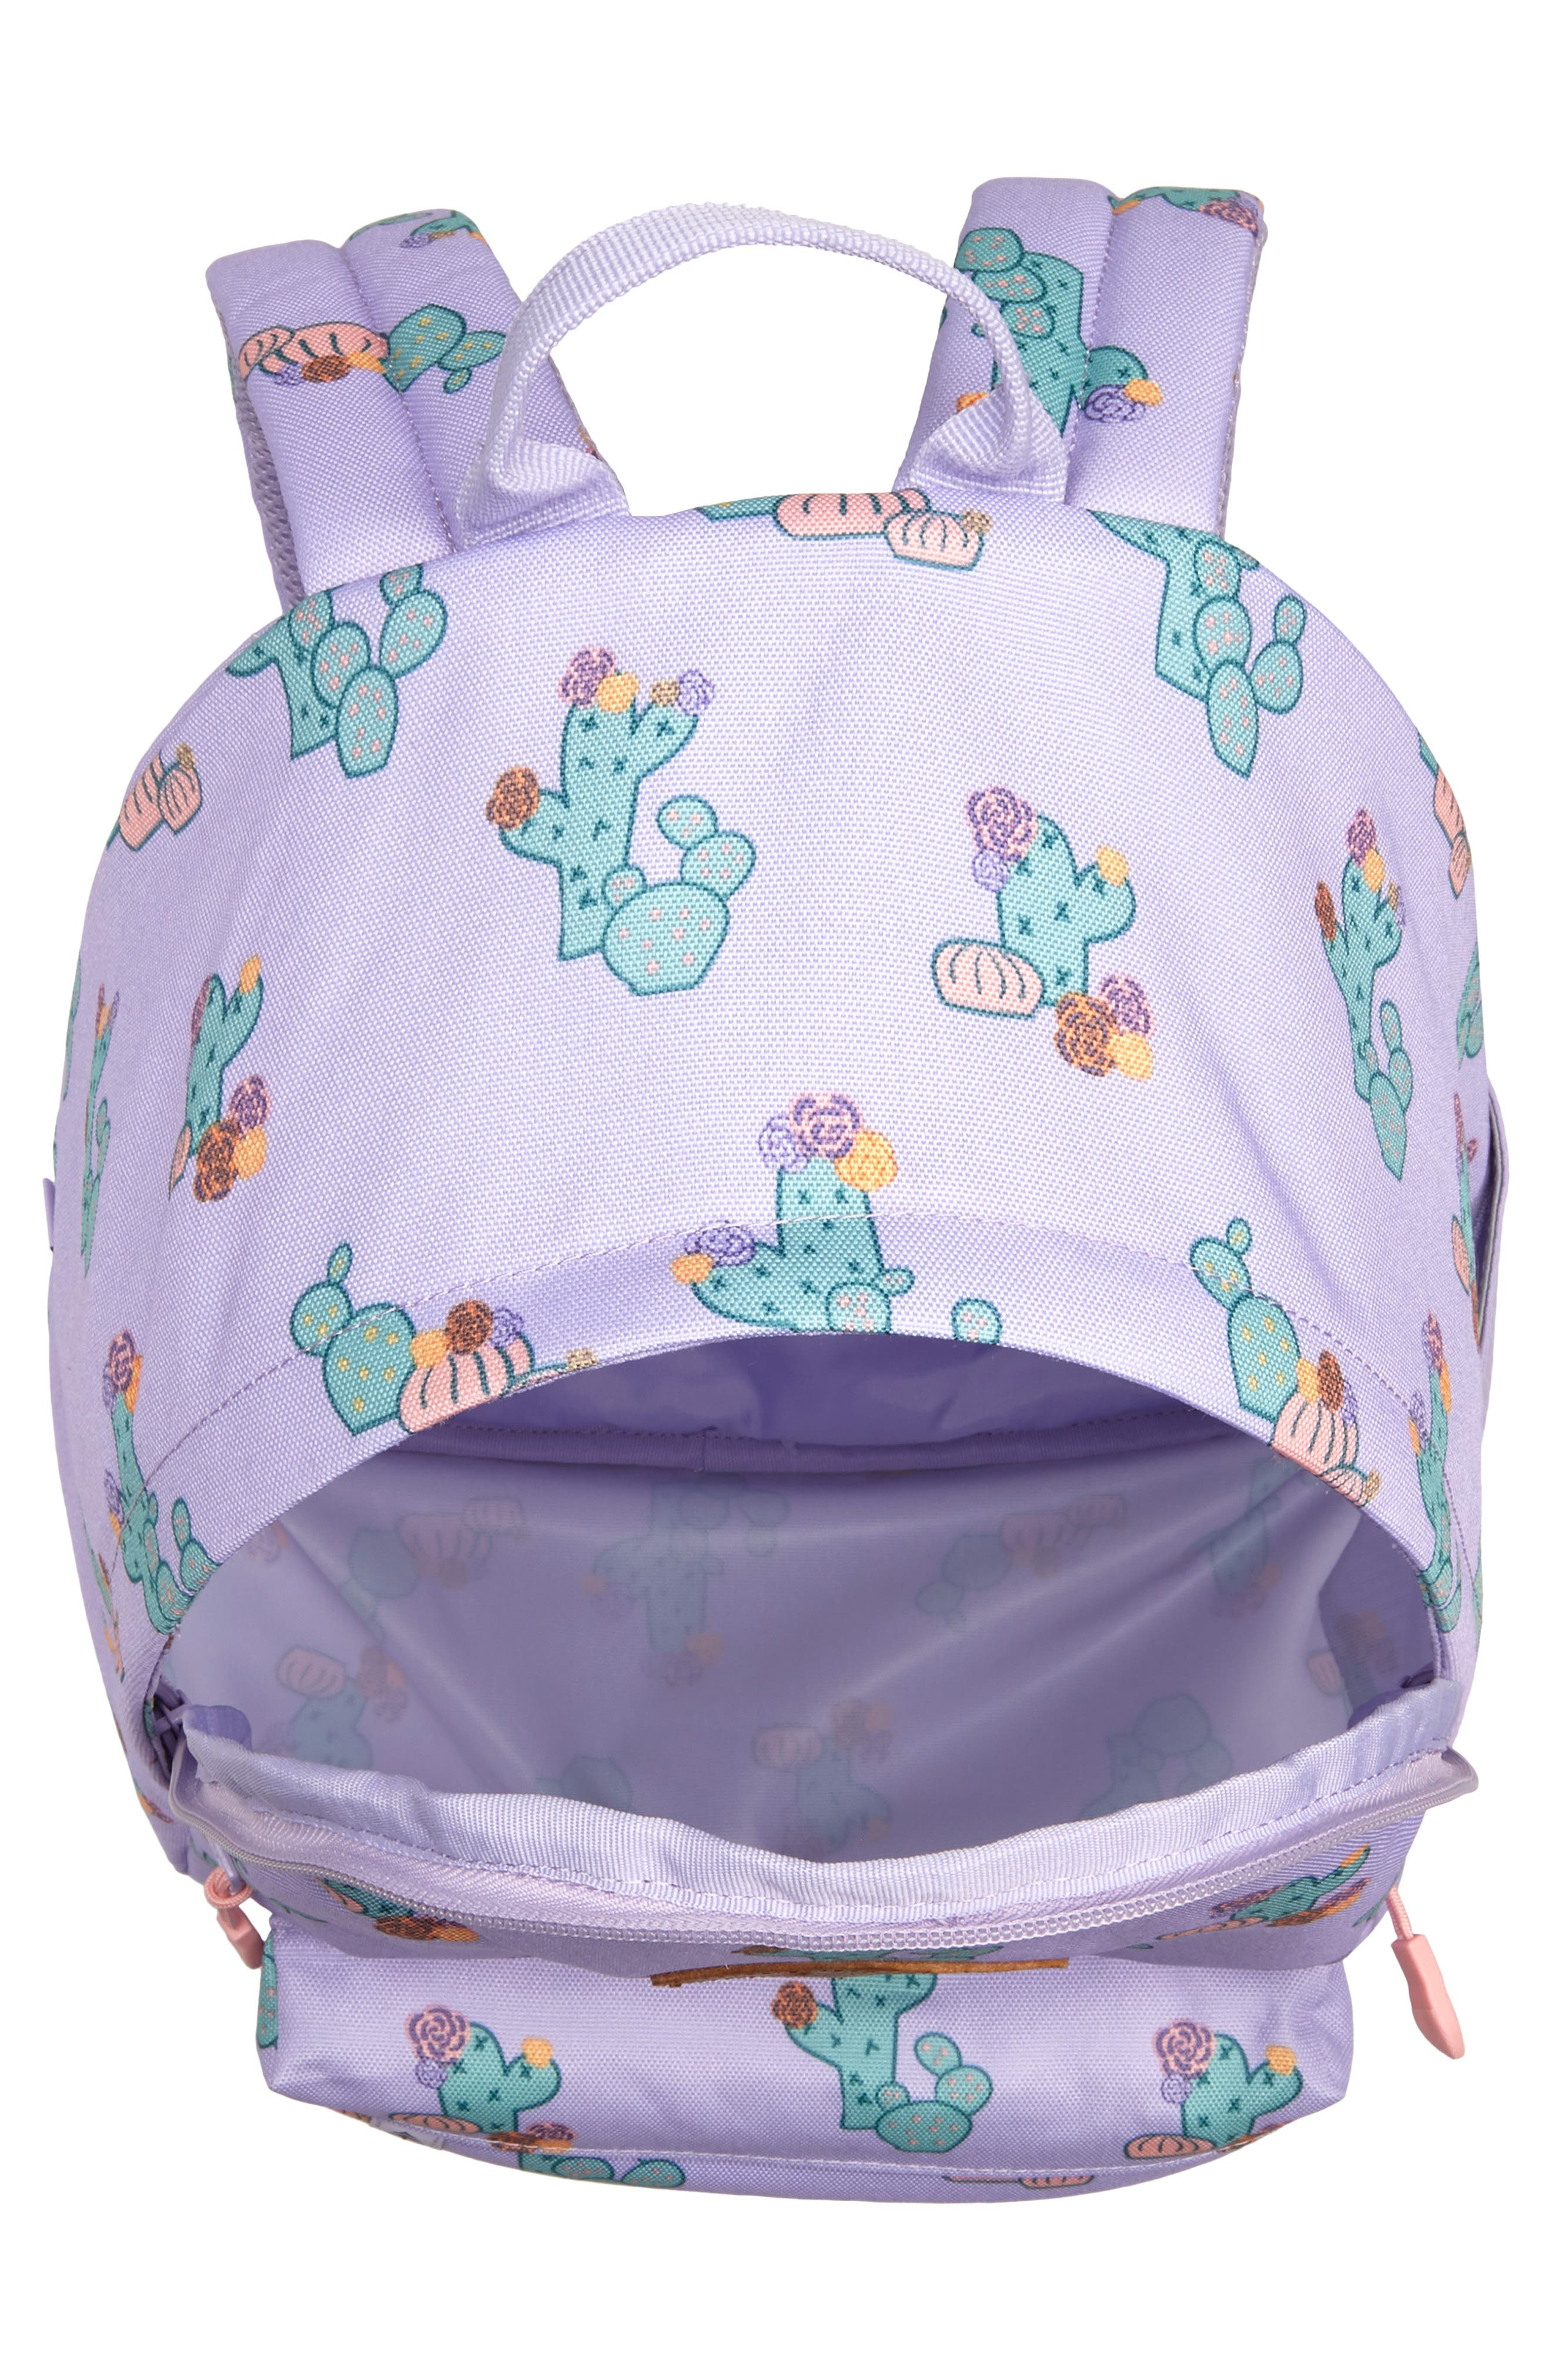 Bayside Cactus Flower Backpack,                             Alternate thumbnail 4, color,                             Cactus Flower